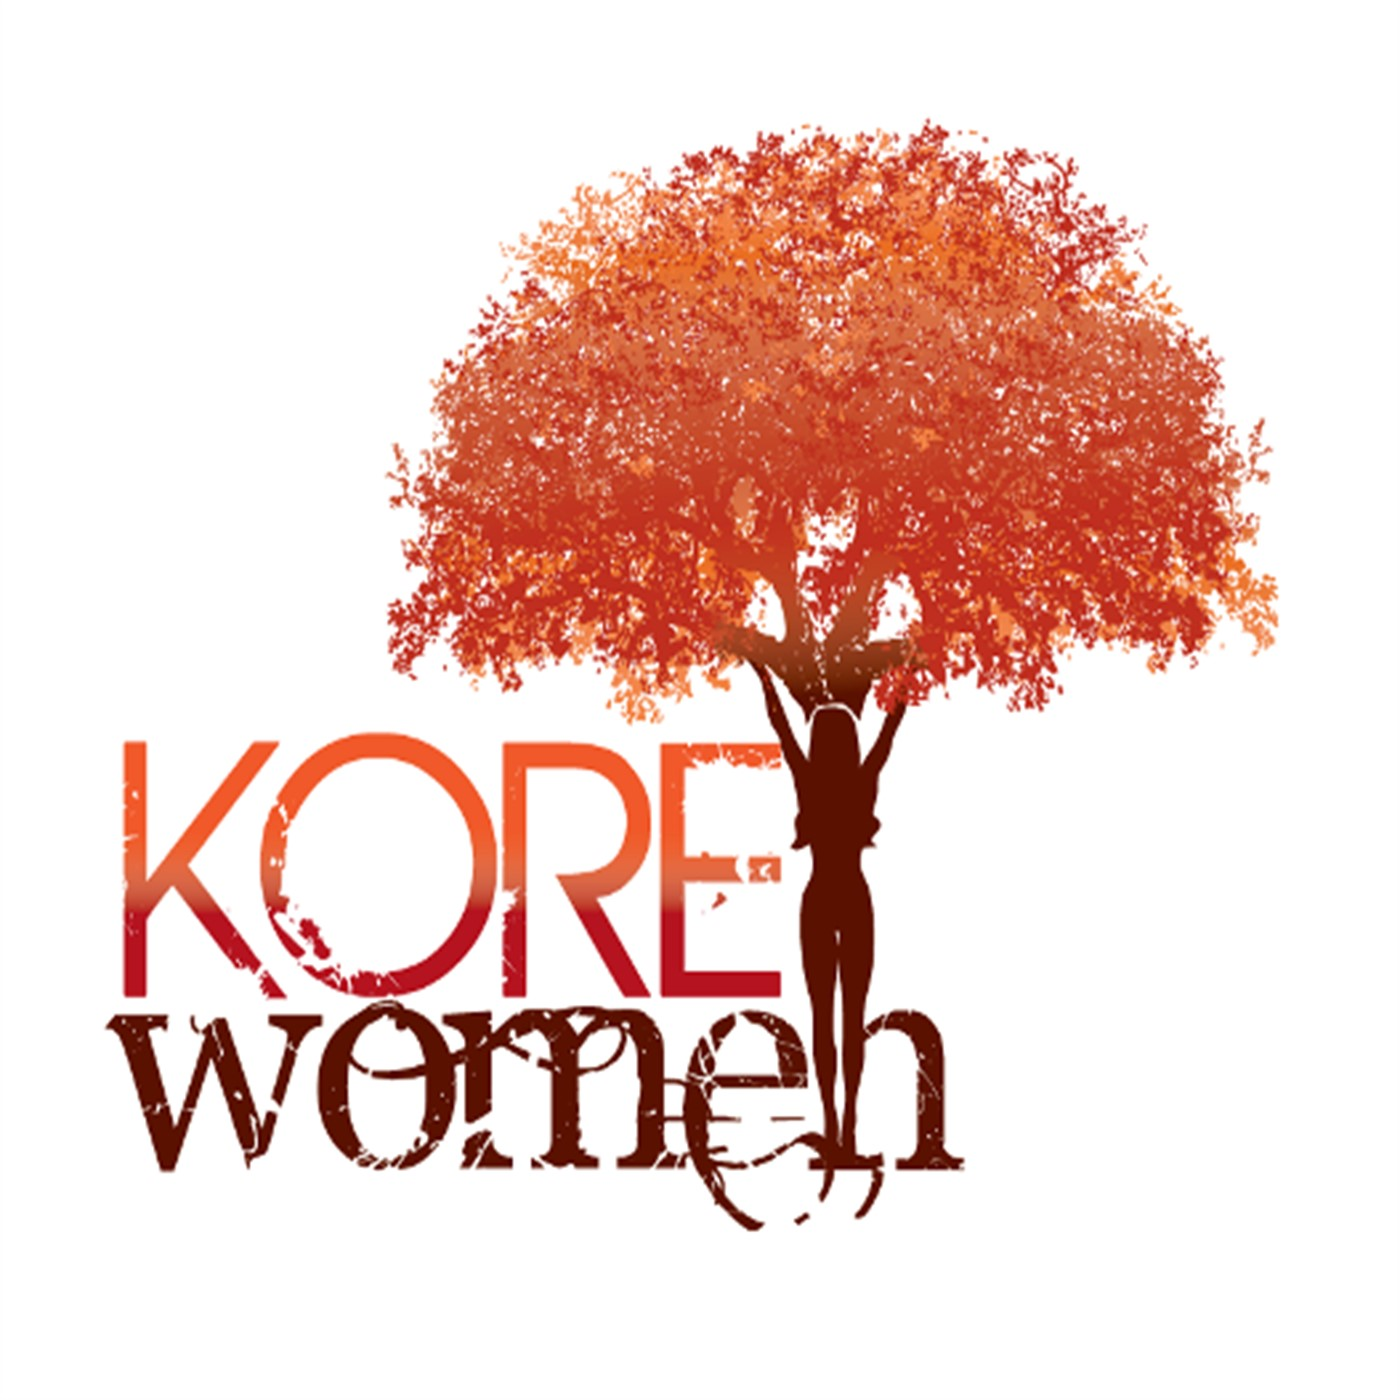 KORE Women Podcast - KORE Women Features Stephanie Owens, A Nashville Musical Artist, Who Sings Her Story